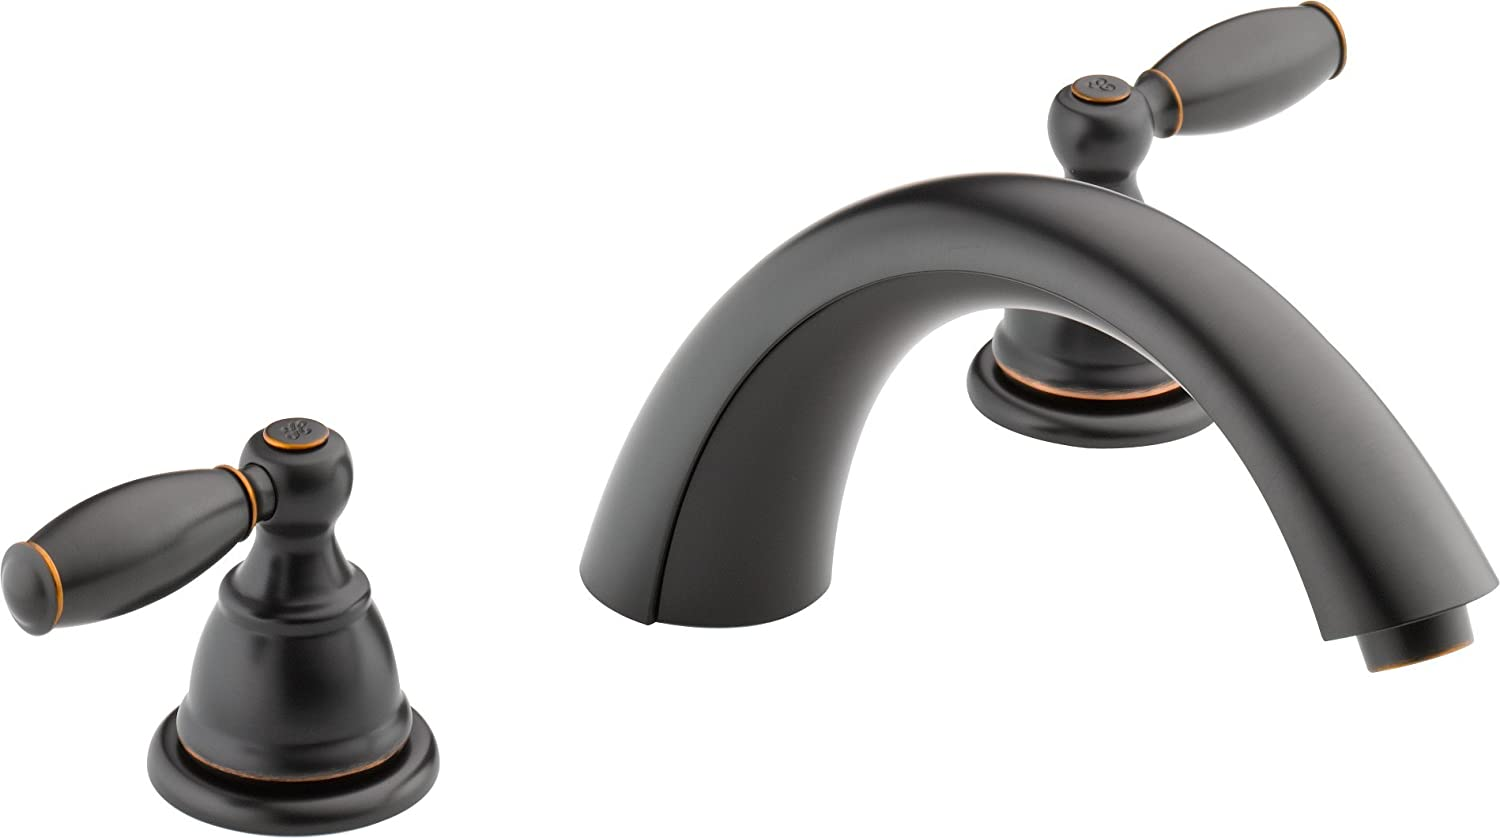 Valve Not Included Peerless Tunbridge 2-Handle Widespread Roman Tub Faucet Trim Kit Delta Faucet Oil-Rubbed Bronze PTT298510-OB